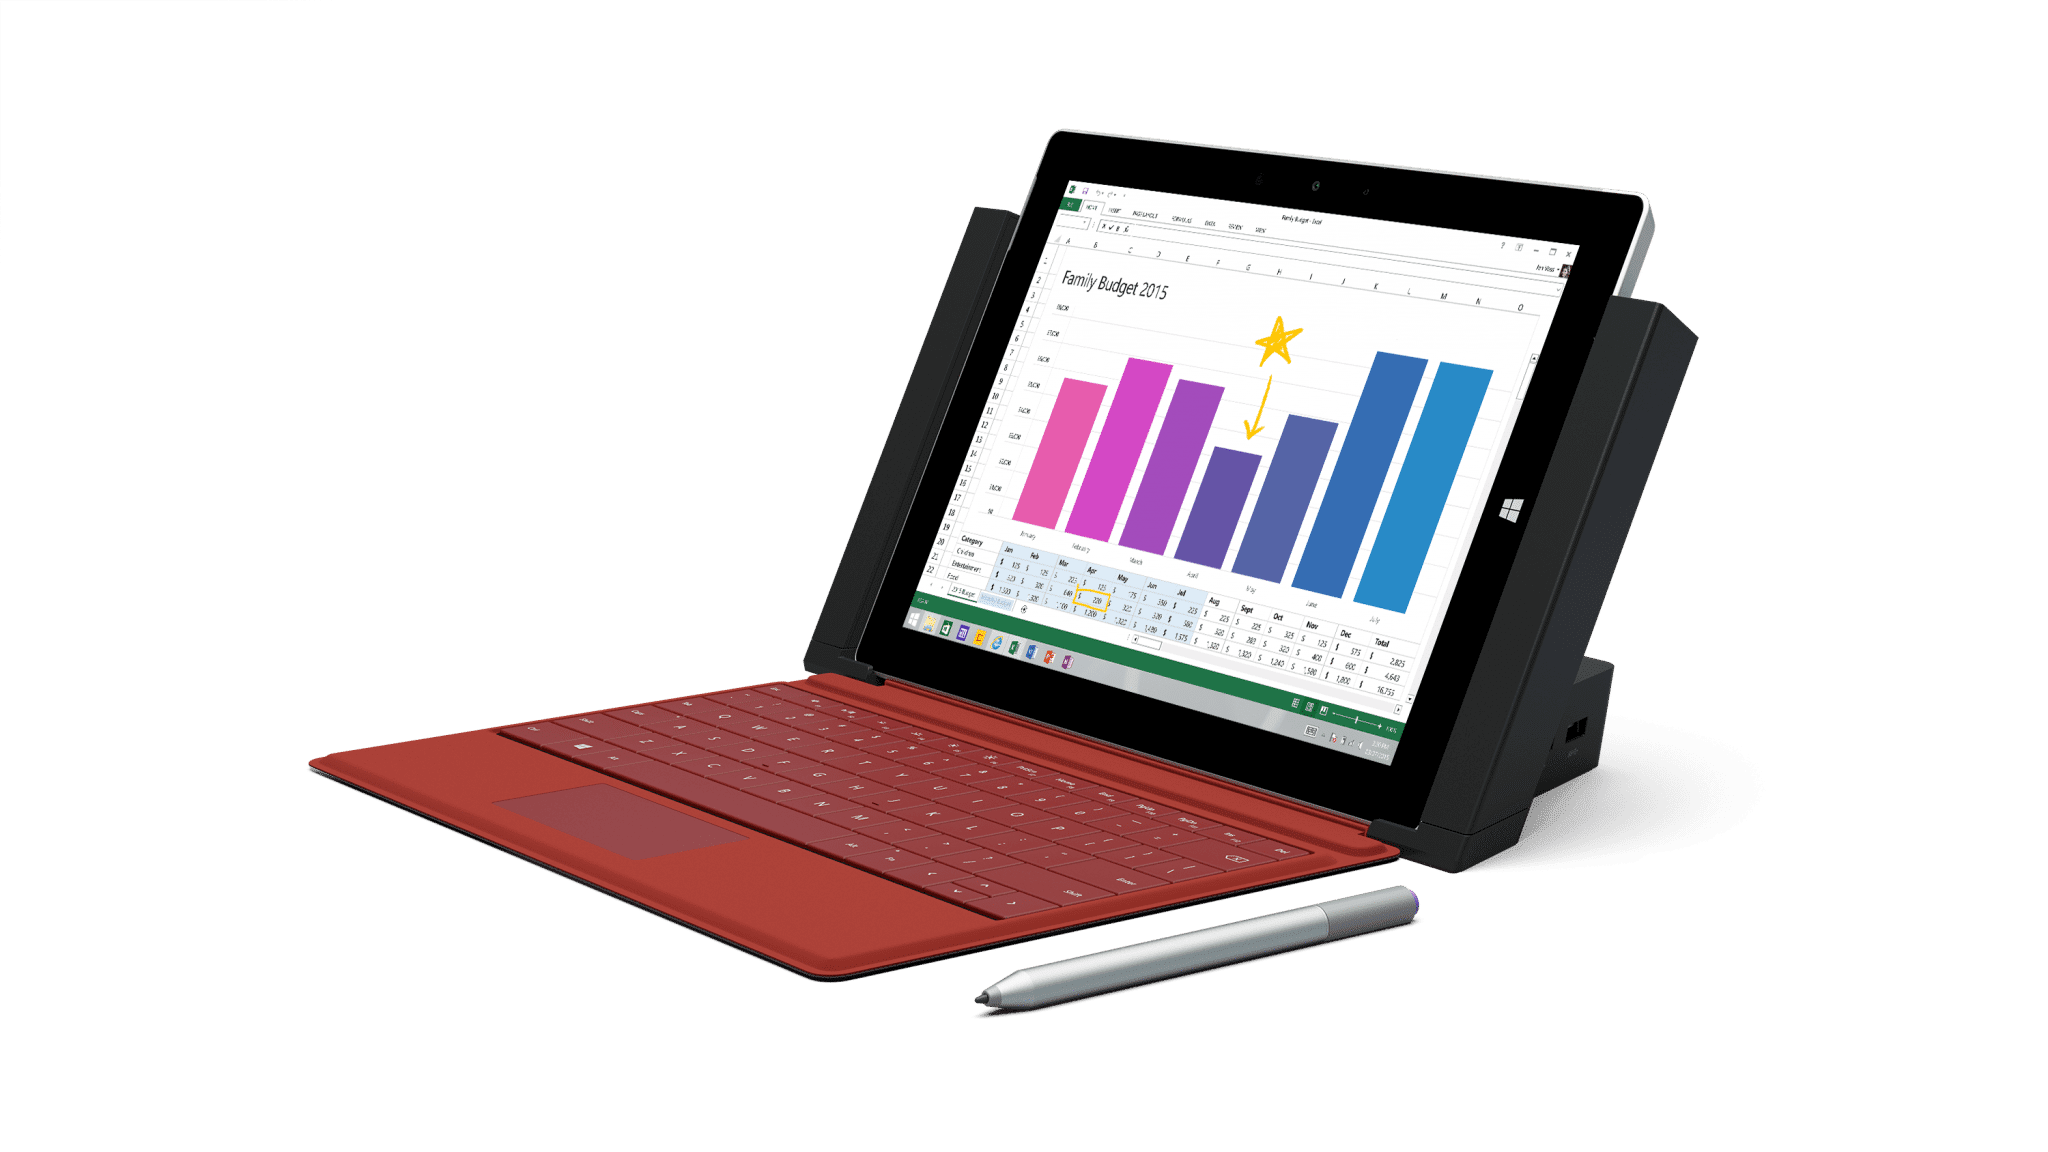 microsoft announced surface 3 with intel atom inside for 499 only thenerdmag. Black Bedroom Furniture Sets. Home Design Ideas